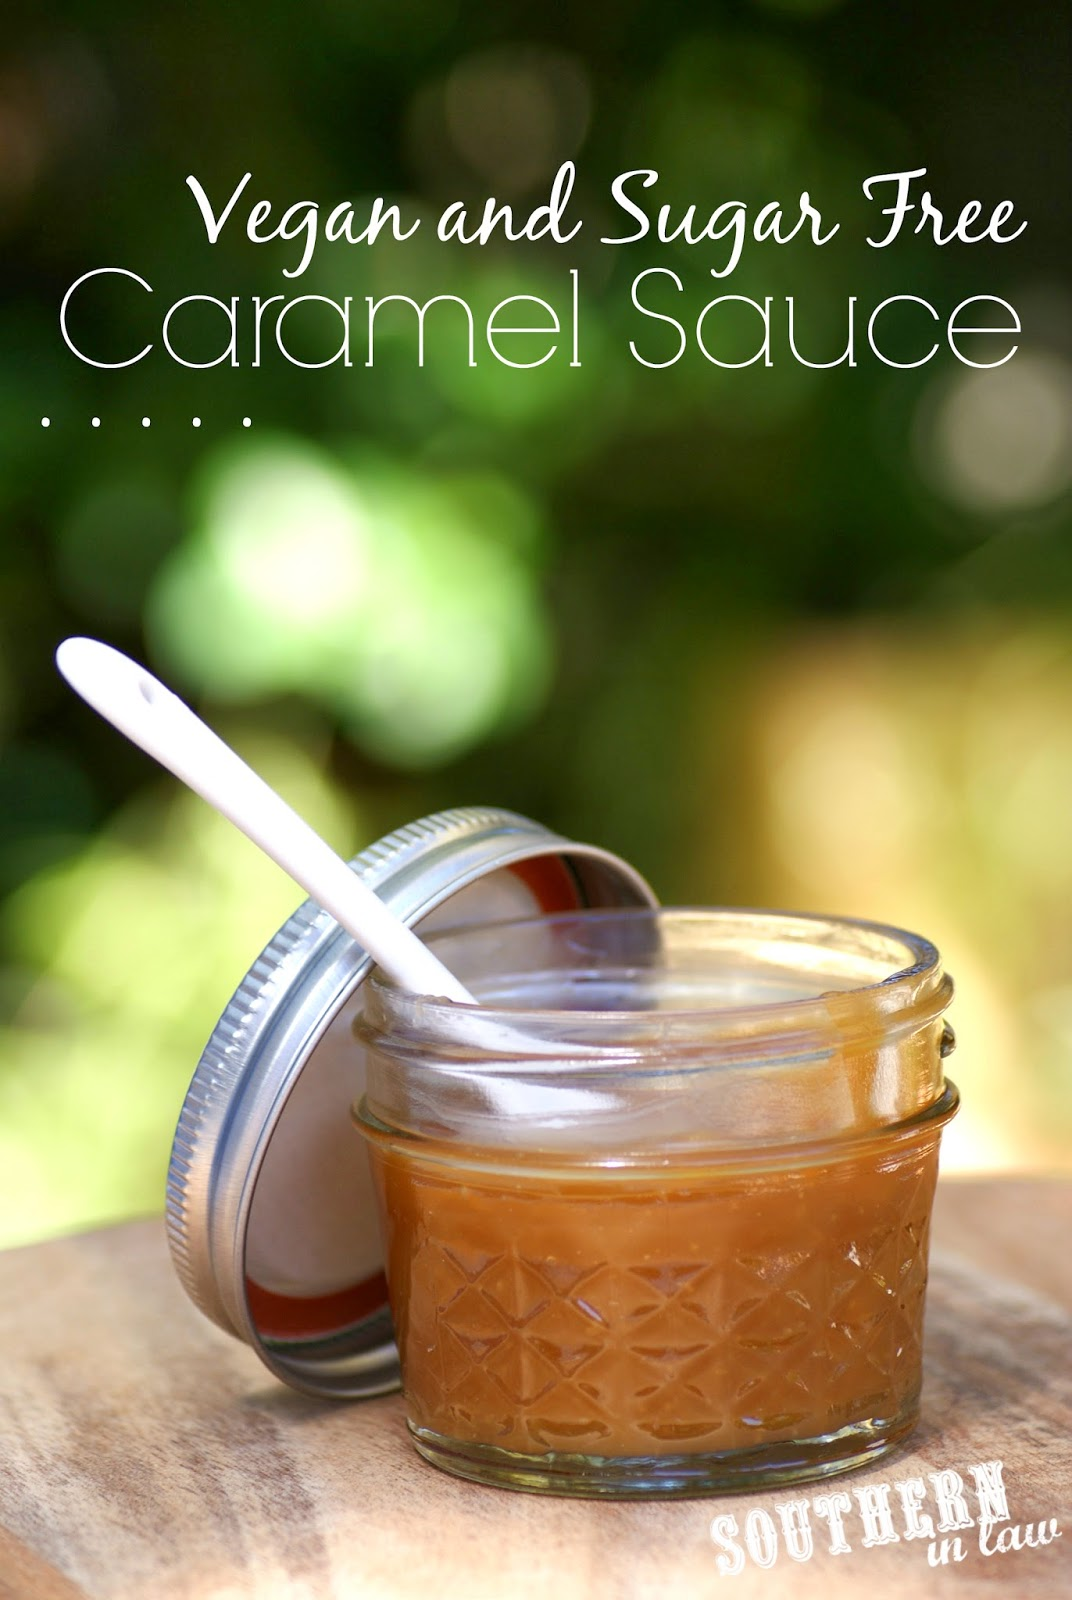 Homemade Vegan Caramel Sauce Recipe - gluten free, low fat, sugar free, healthy